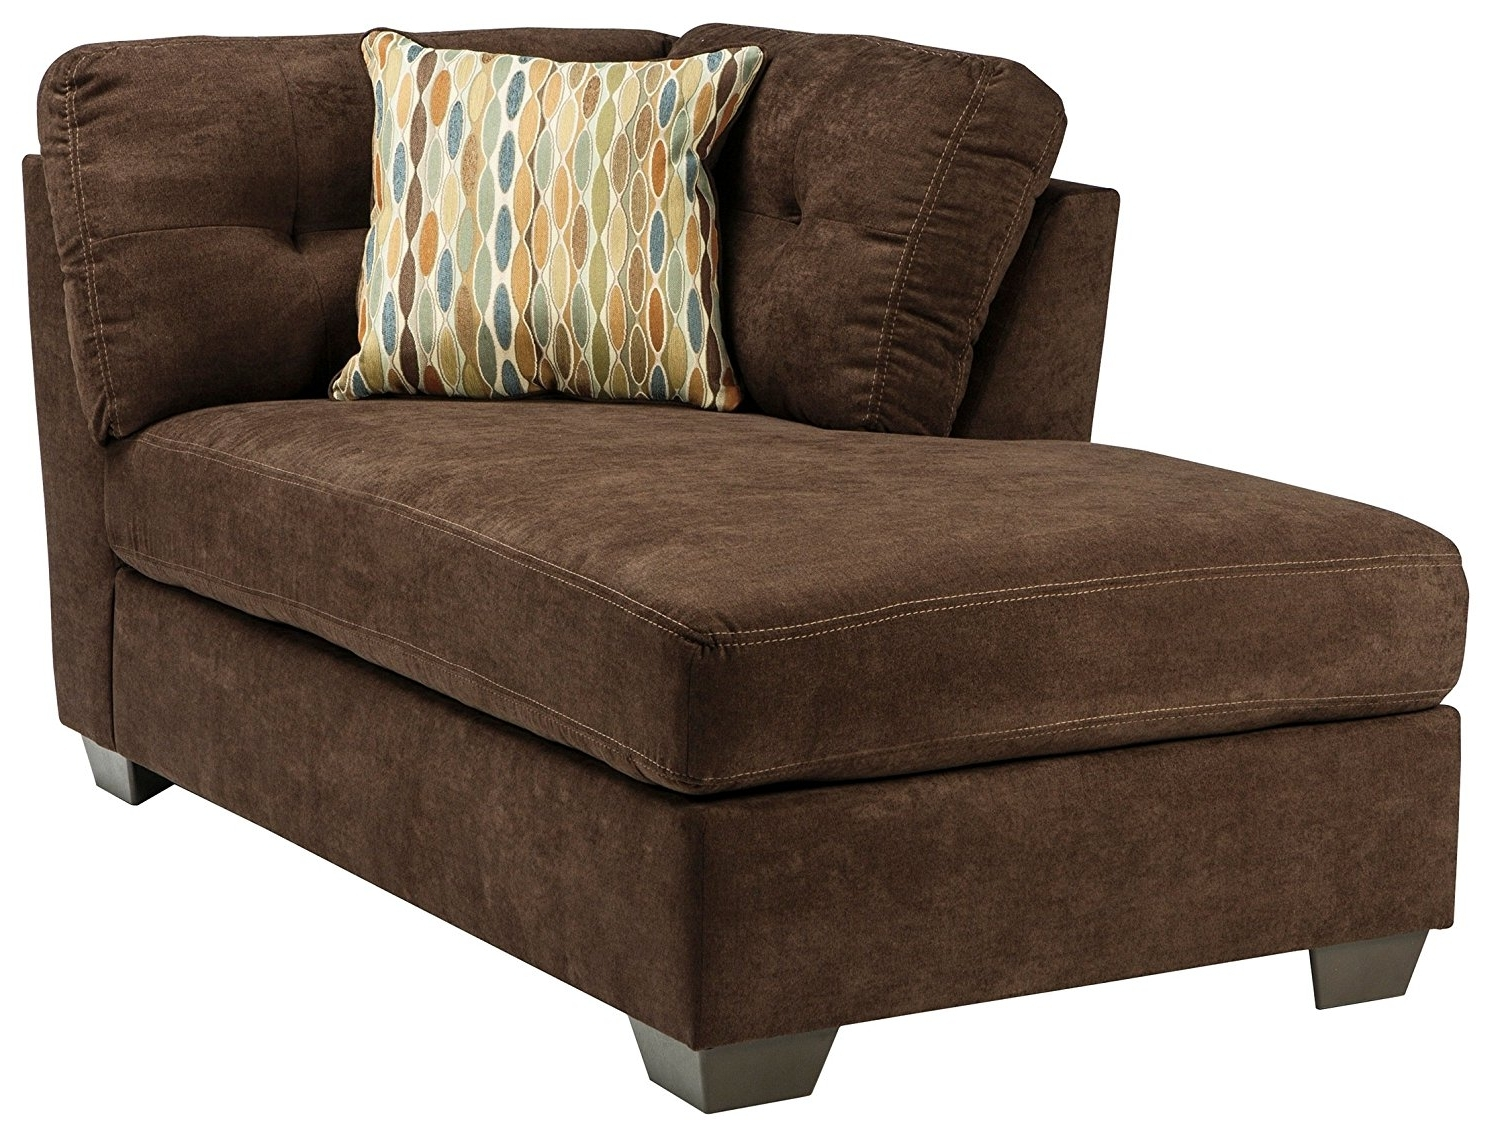 Latest Amazon: Ashley Delta City Left Corner Chaise Lounge In Pertaining To Ashley Furniture Chaise Lounges (View 11 of 15)